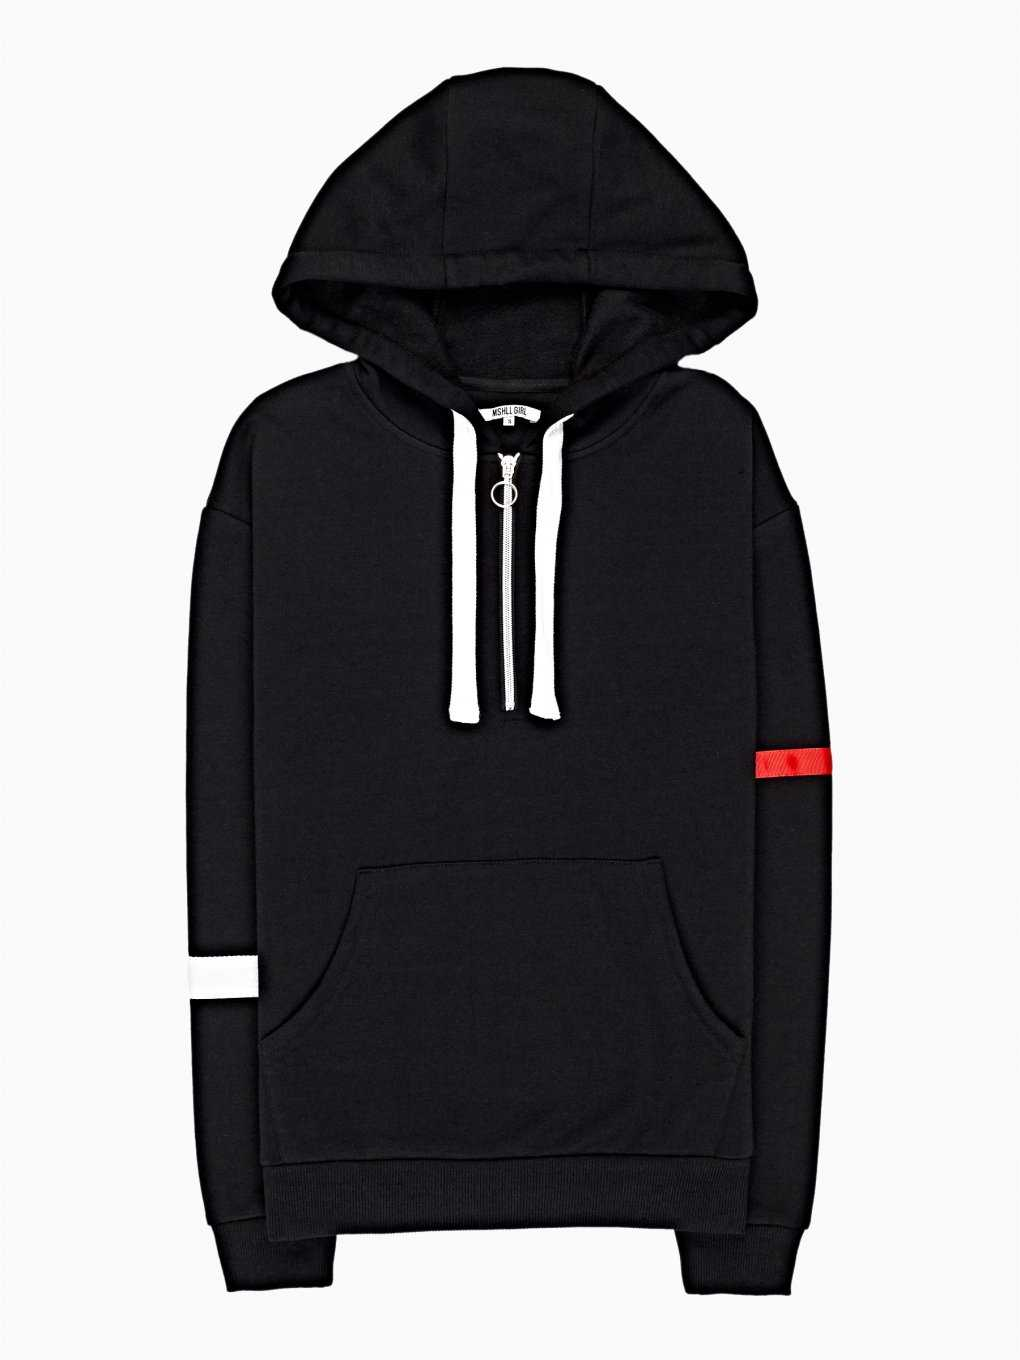 Hoodie with tapes